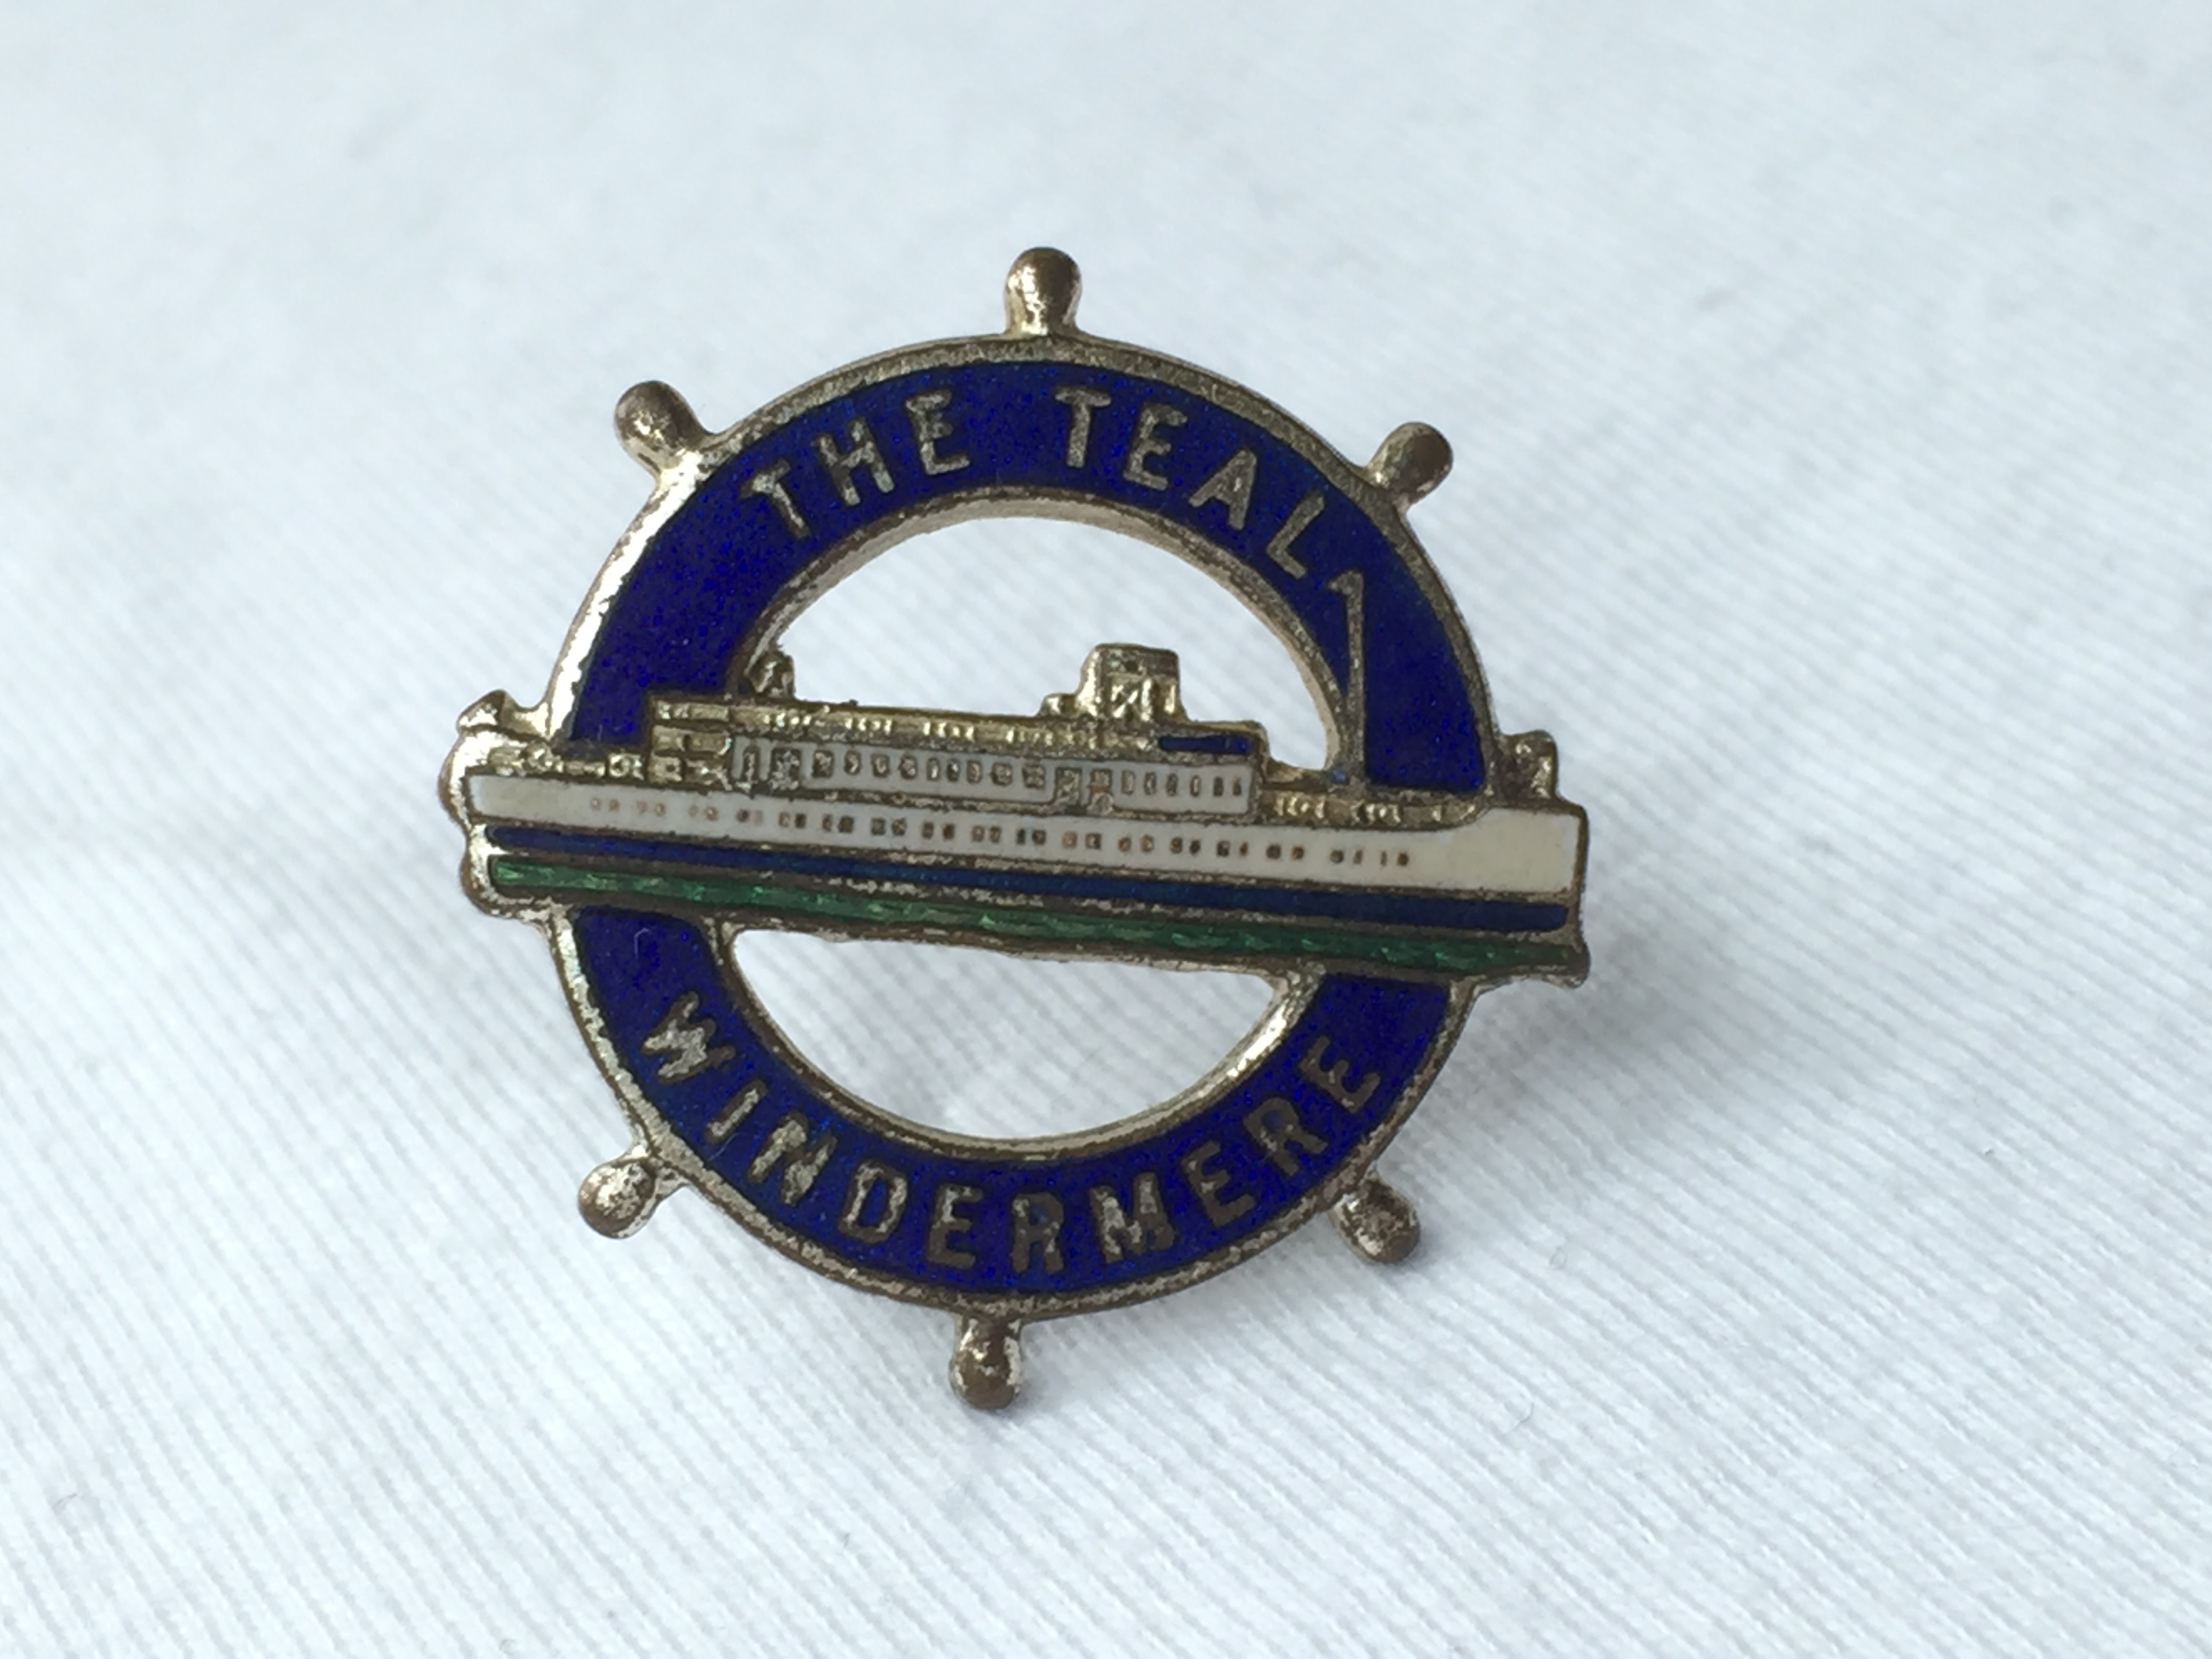 LAPEL PIN BADGE FROM THE WINDERMERE STEAMERS LINE VESSEL THE TEAL